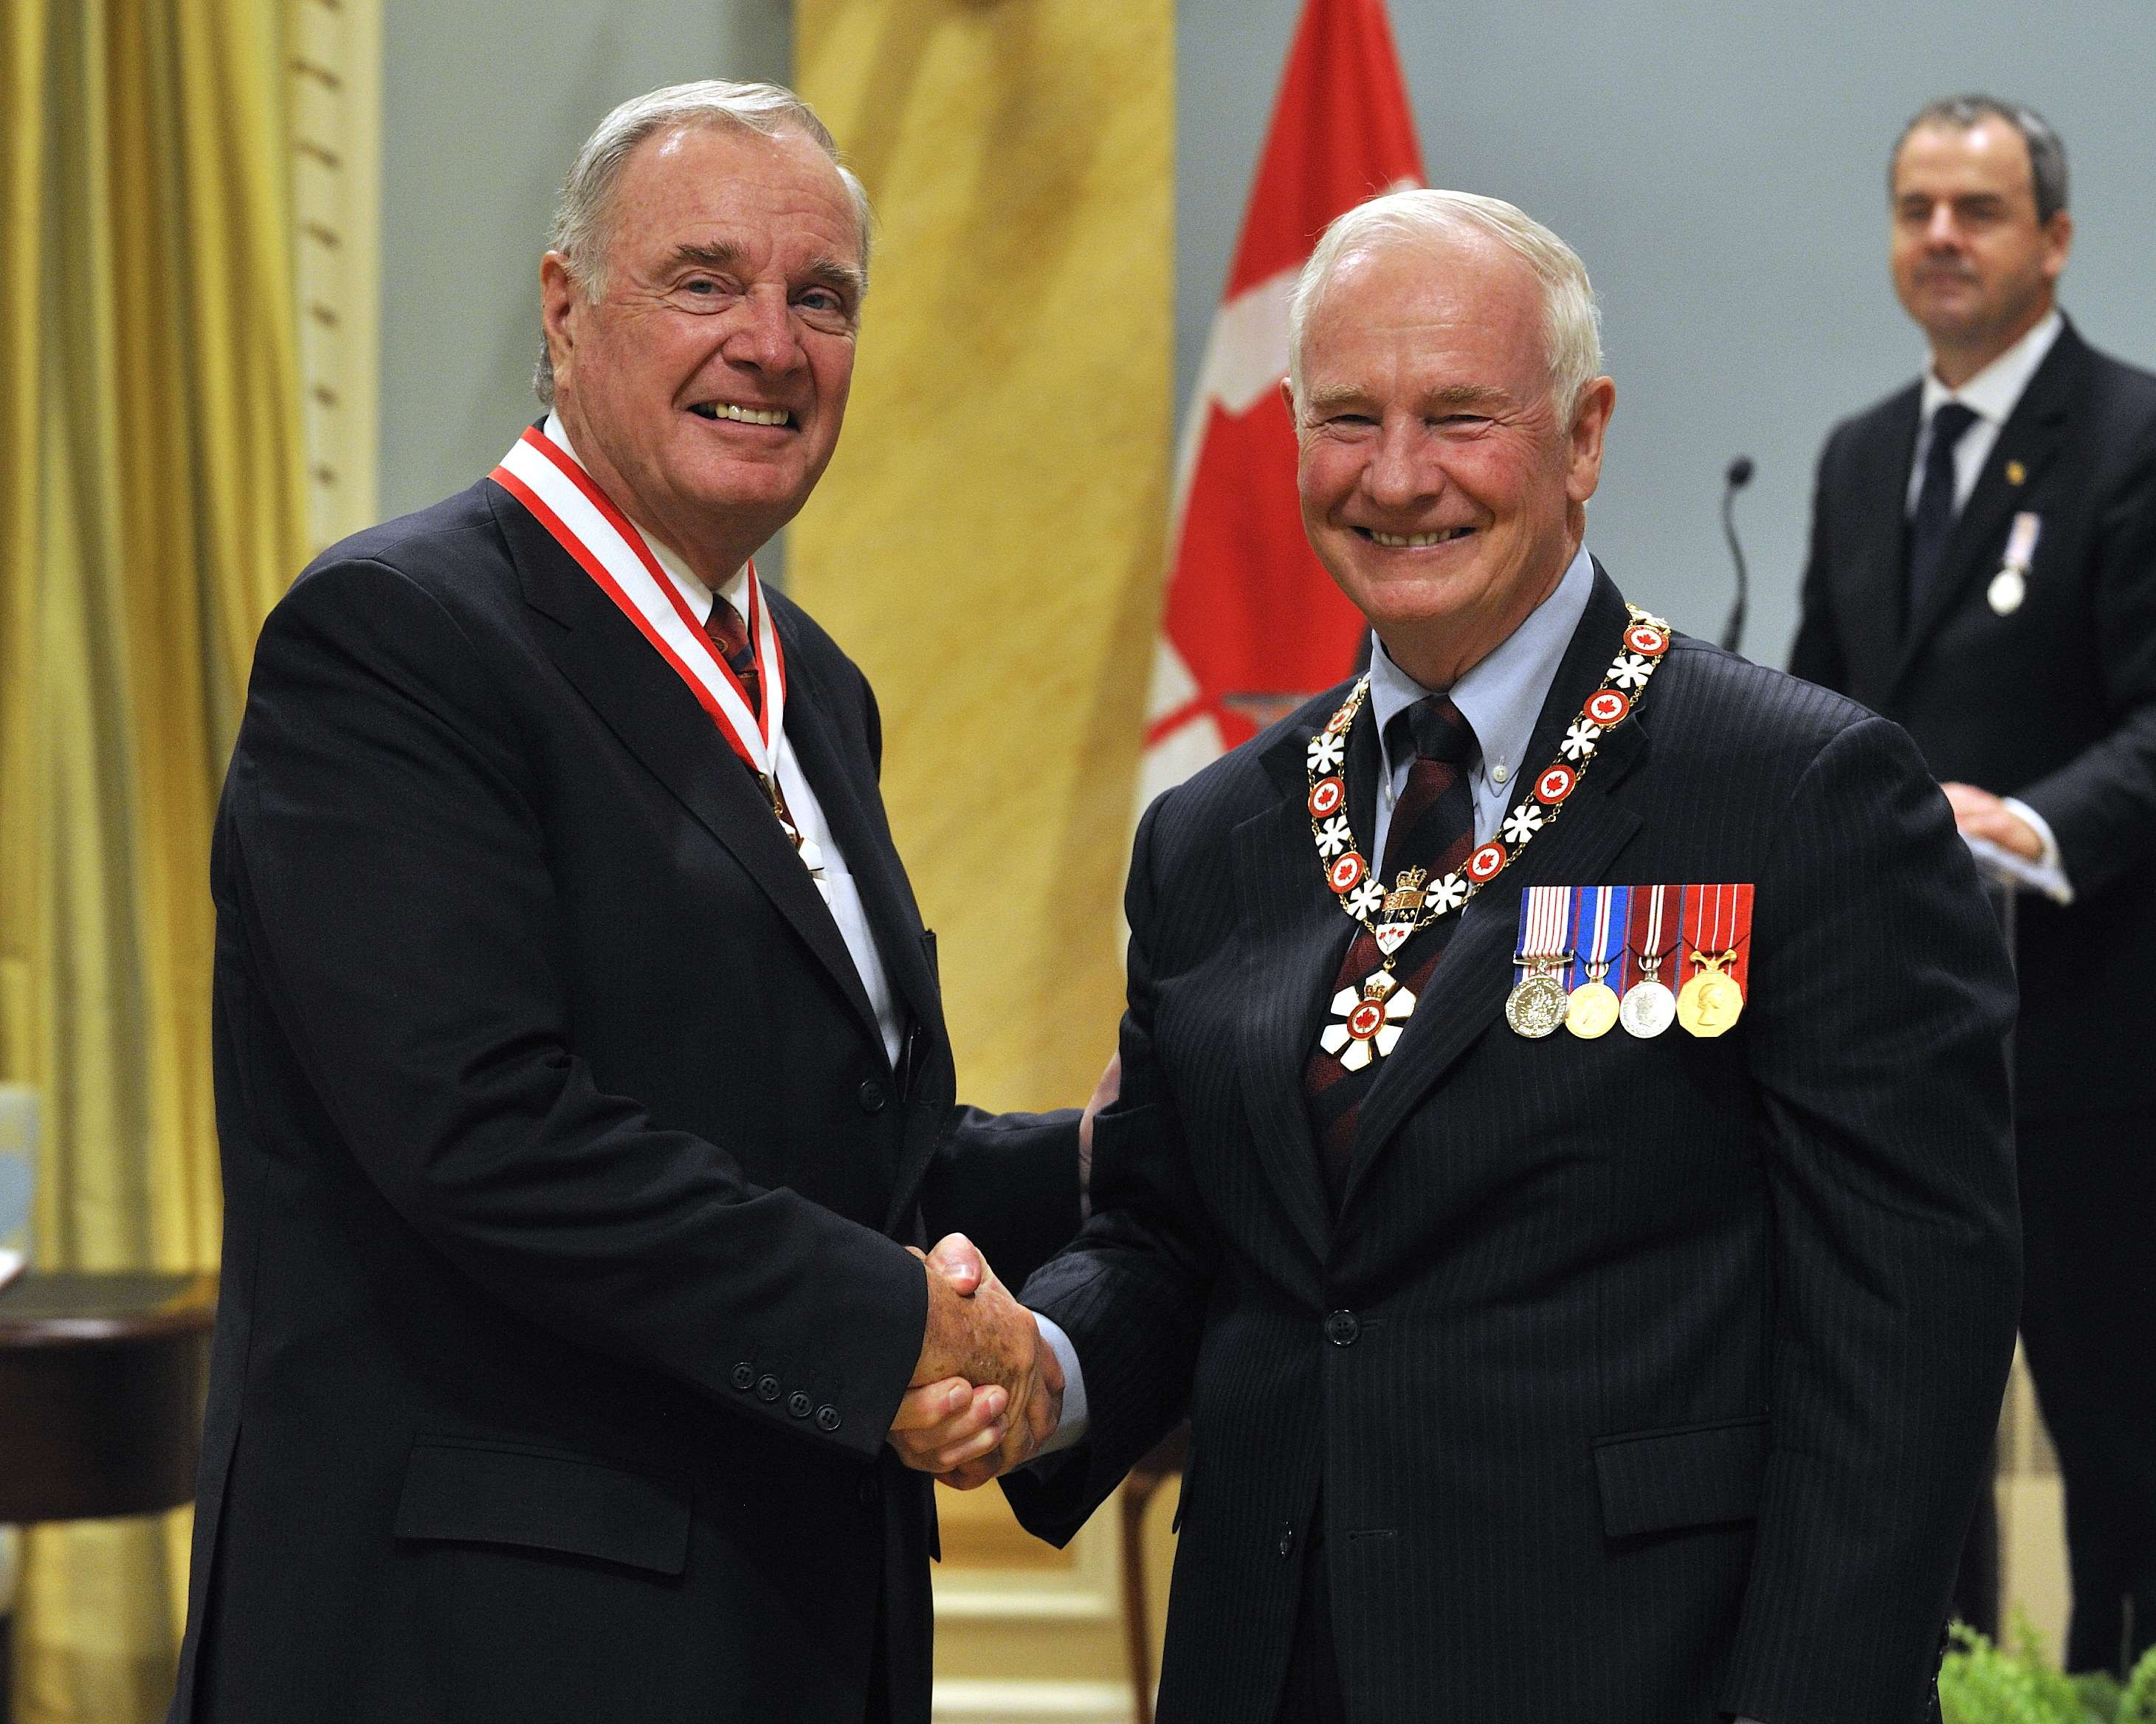 The Right Honourable Paul Martin, P.C., C.C. (Montréal, Québec) has long championed economic and social development in Canada and abroad. Following a distinguished career in the private sector, he entered federal politics and went on to serve as minister of Finance, leader of the Liberal party and Canada's 21st prime minister. He is particularly known for his work eliminating the fiscal deficit, reducing the country's national debt and putting the Canada Pension Plan on sound footing. He has also played an important role in making the quality of life of Aboriginal Canadians a priority of public policy, in strengthening Canada's health care system, in promoting good governance in Africa and in establishing the G-20.